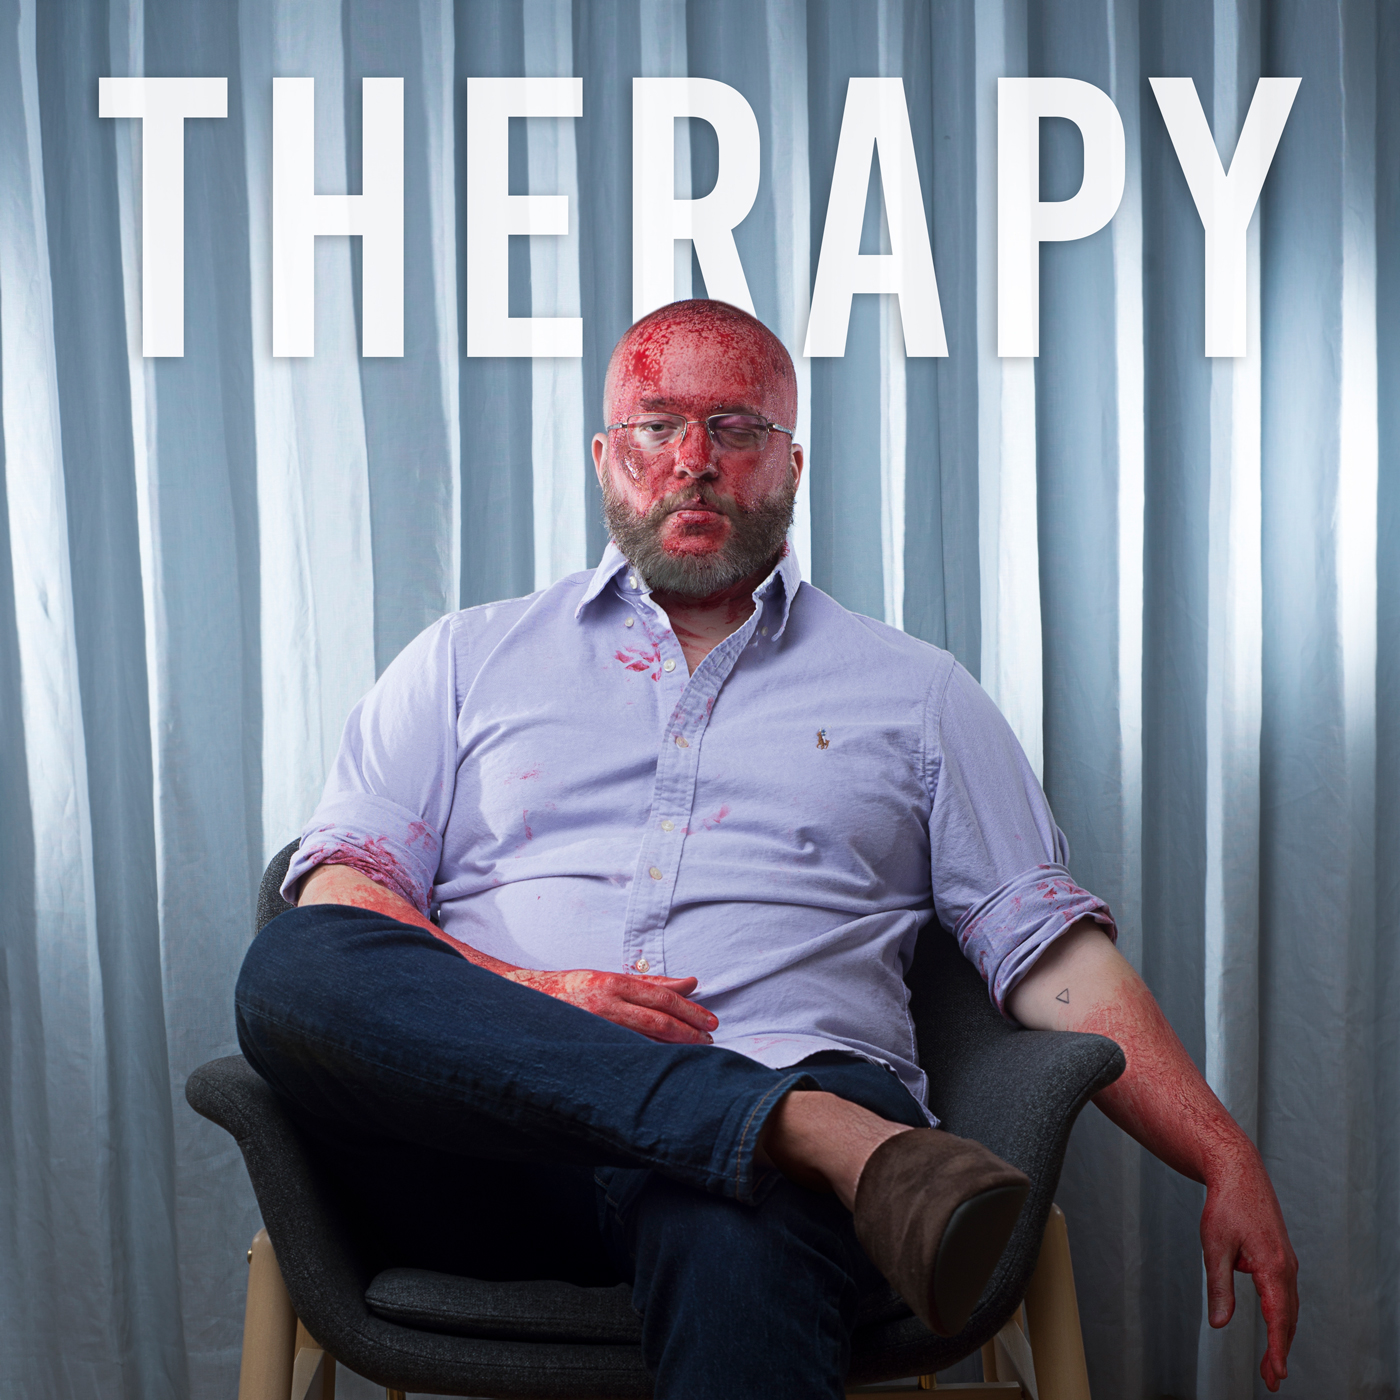 Therapy-Cover_web.jpg